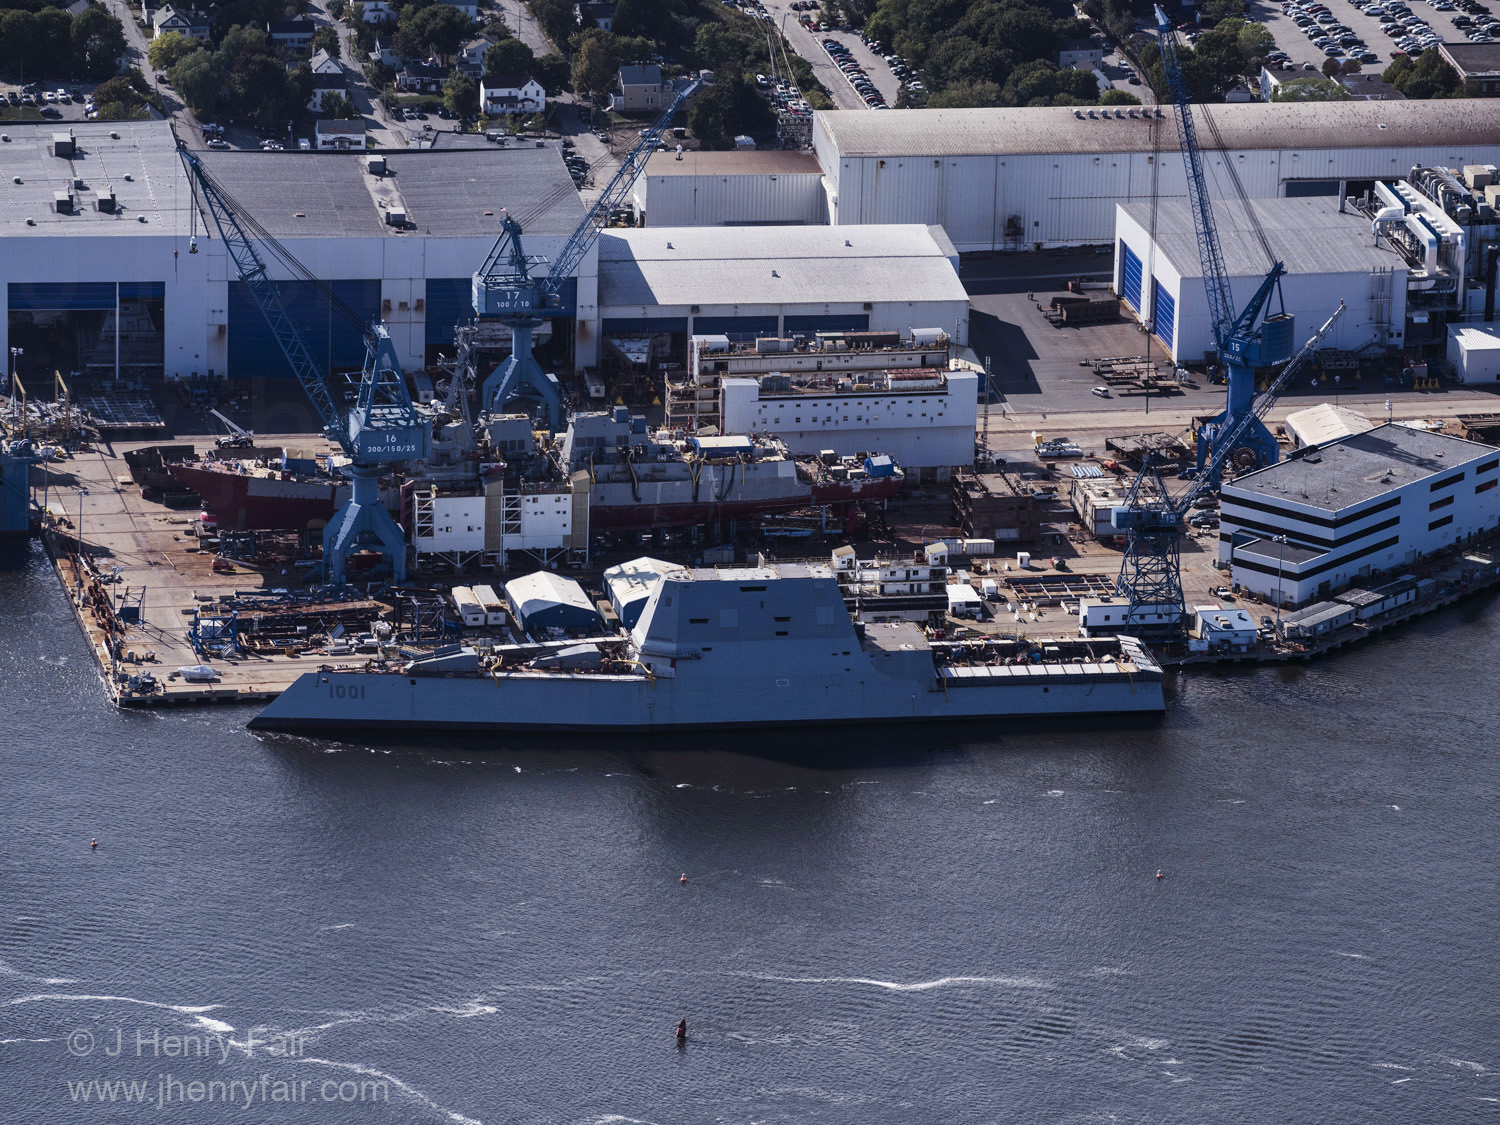 Stealth class frigate at dock